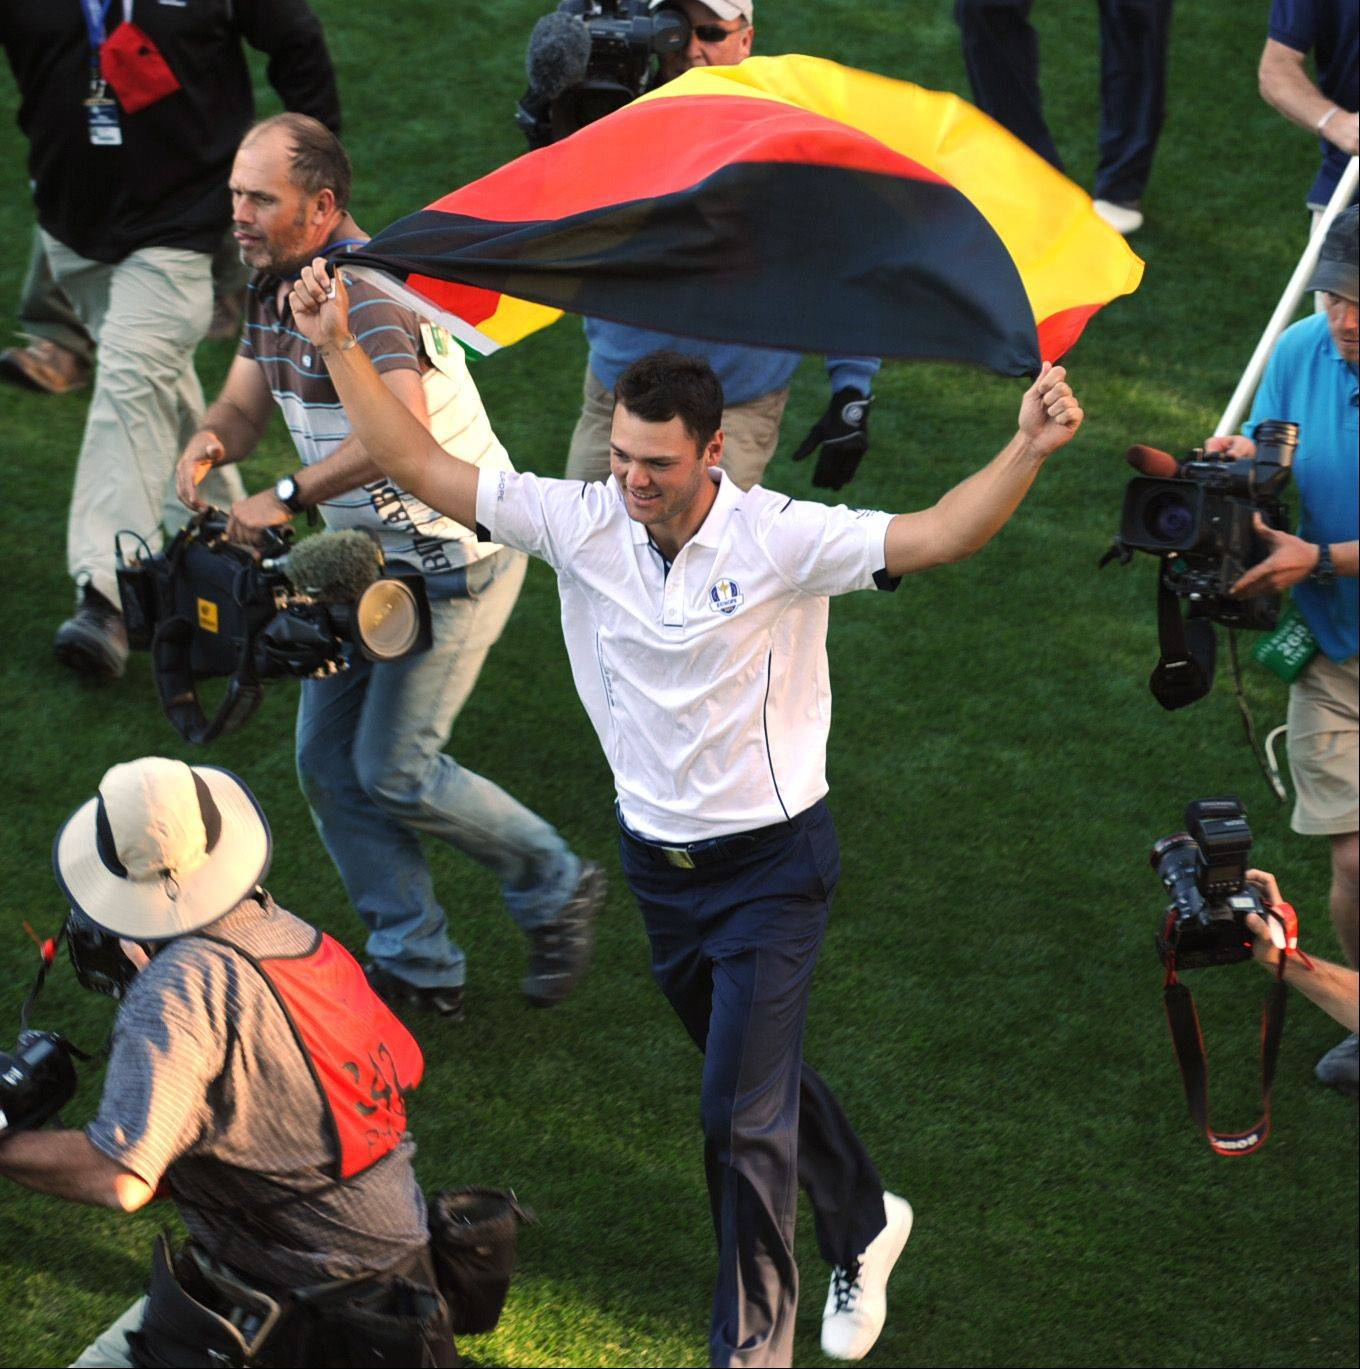 Martin Kaymer of Germany celebrates with his country's flag after his putt won the cup for the European team.